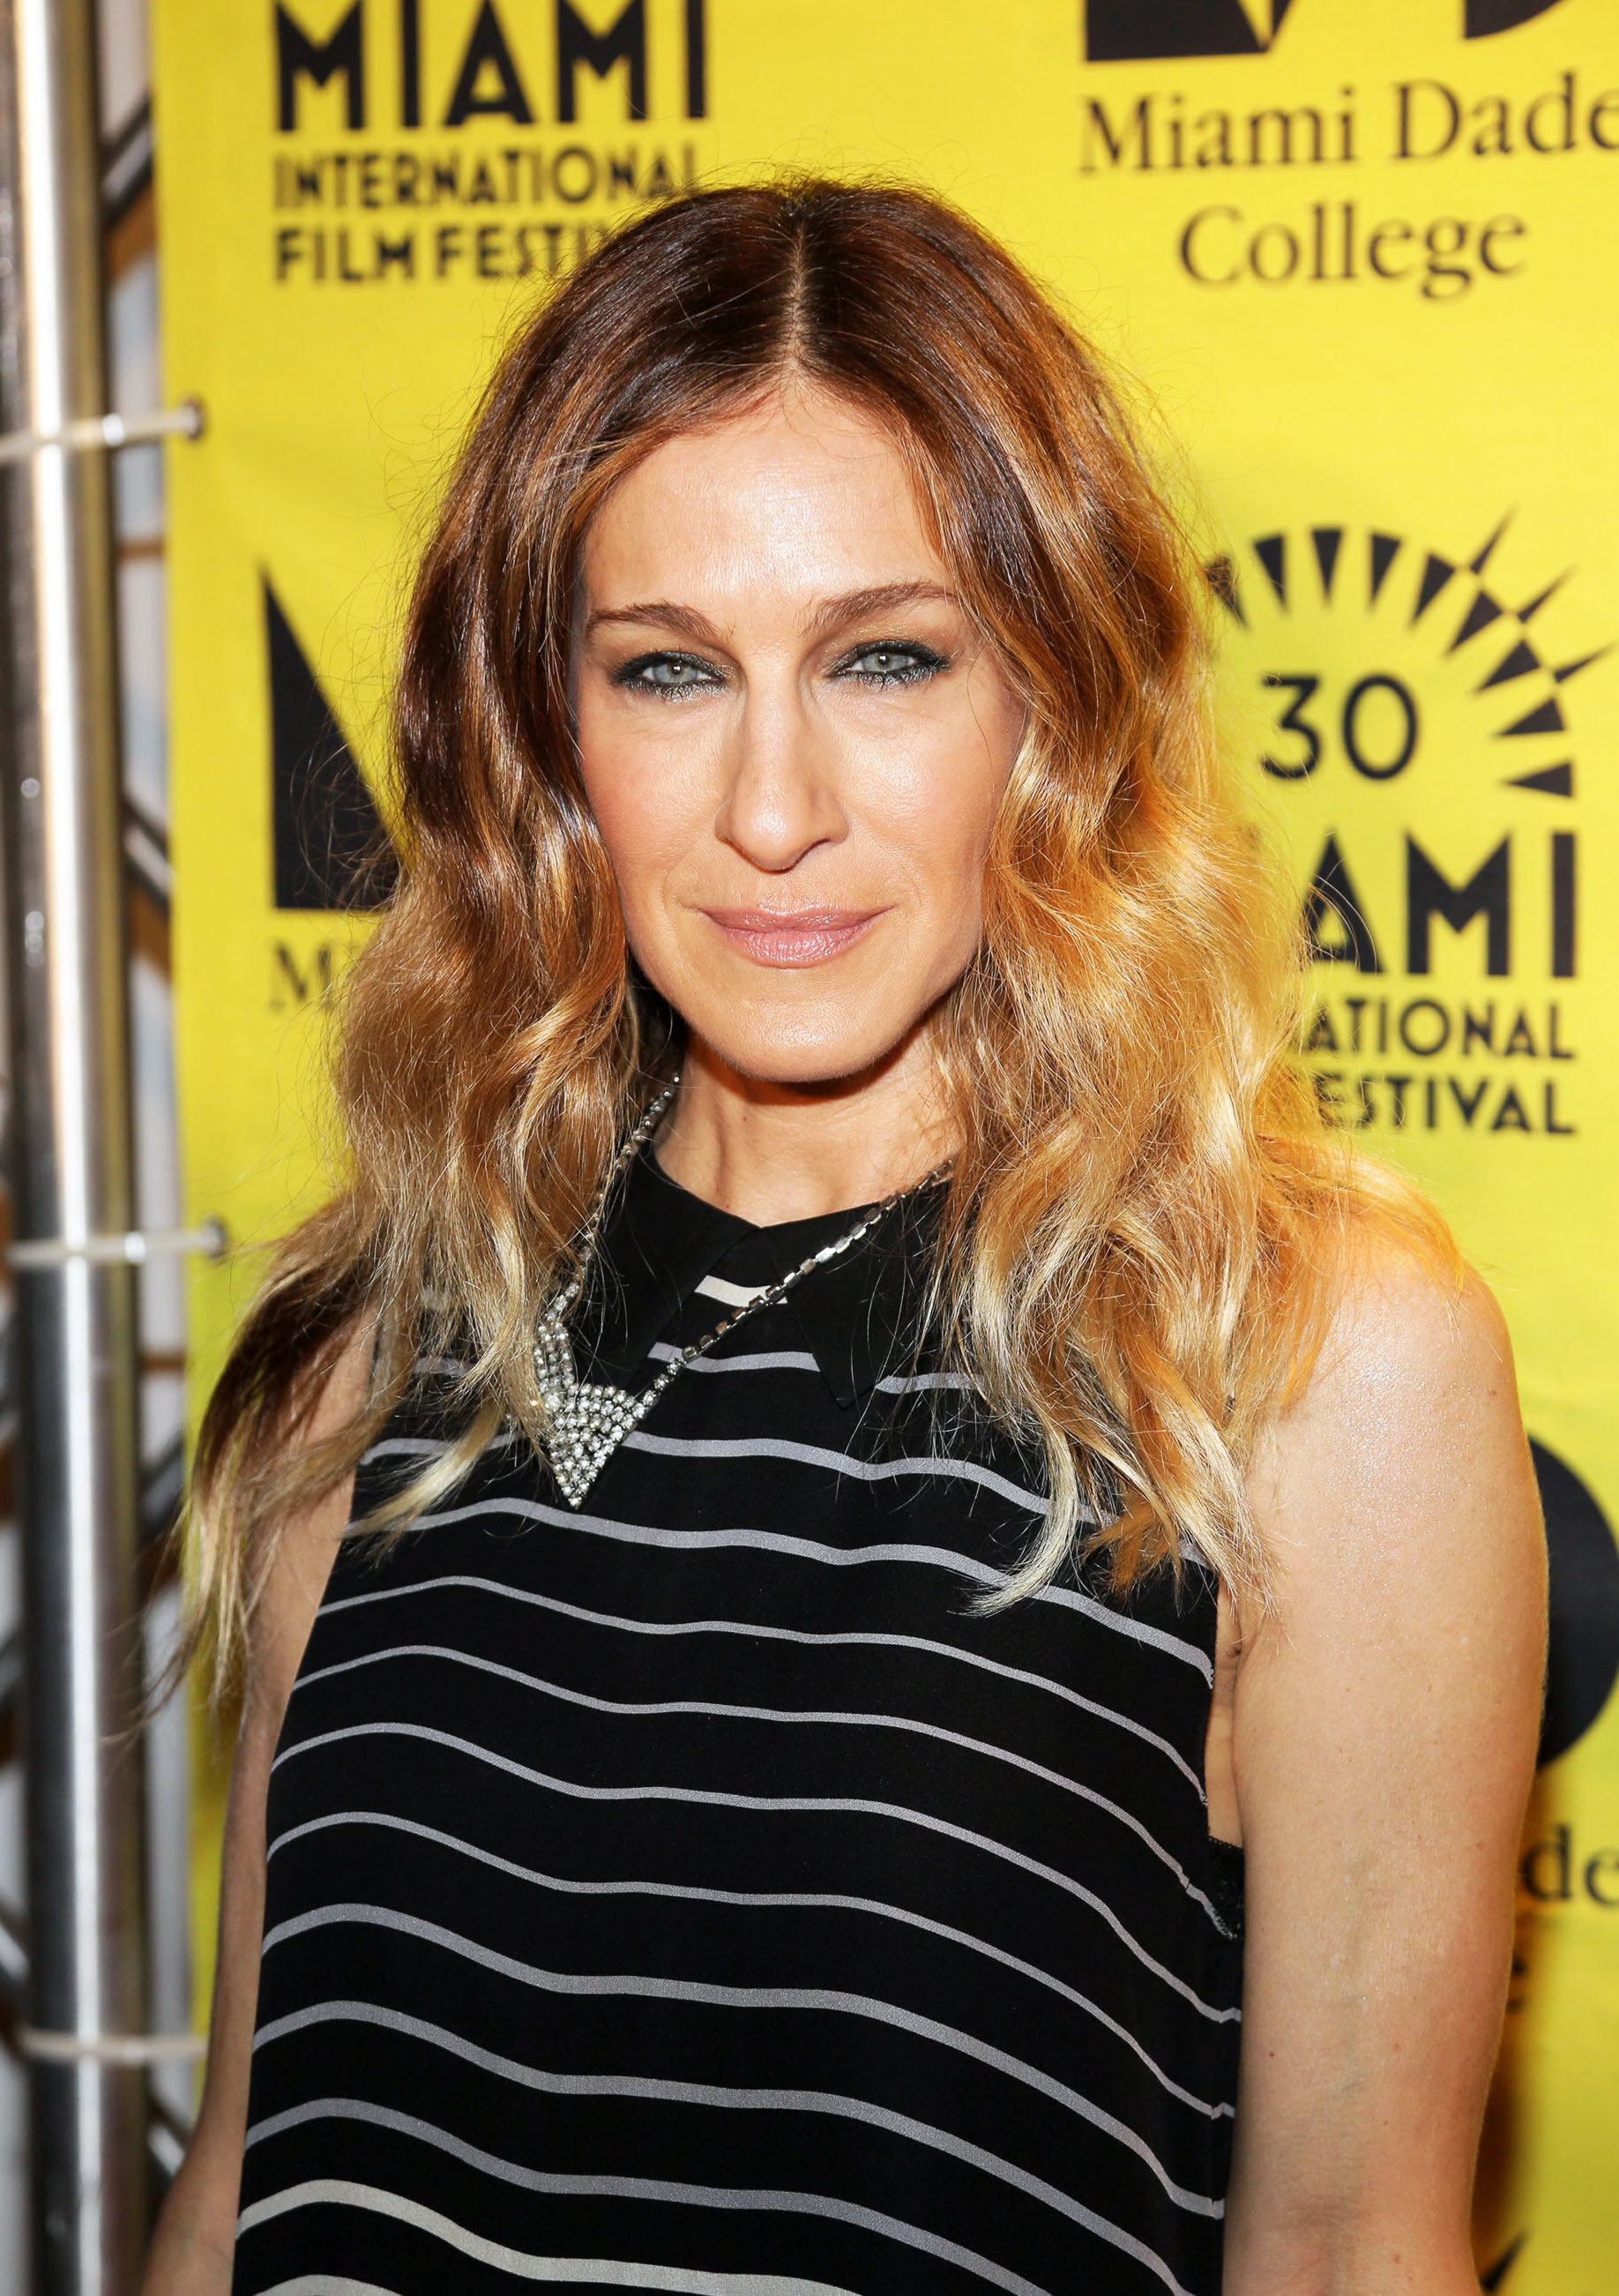 Sarah-Jessica Parker uses Psychic to the stars Ron Bard for his Tarot readings to help guide him in the world of Hollywood.